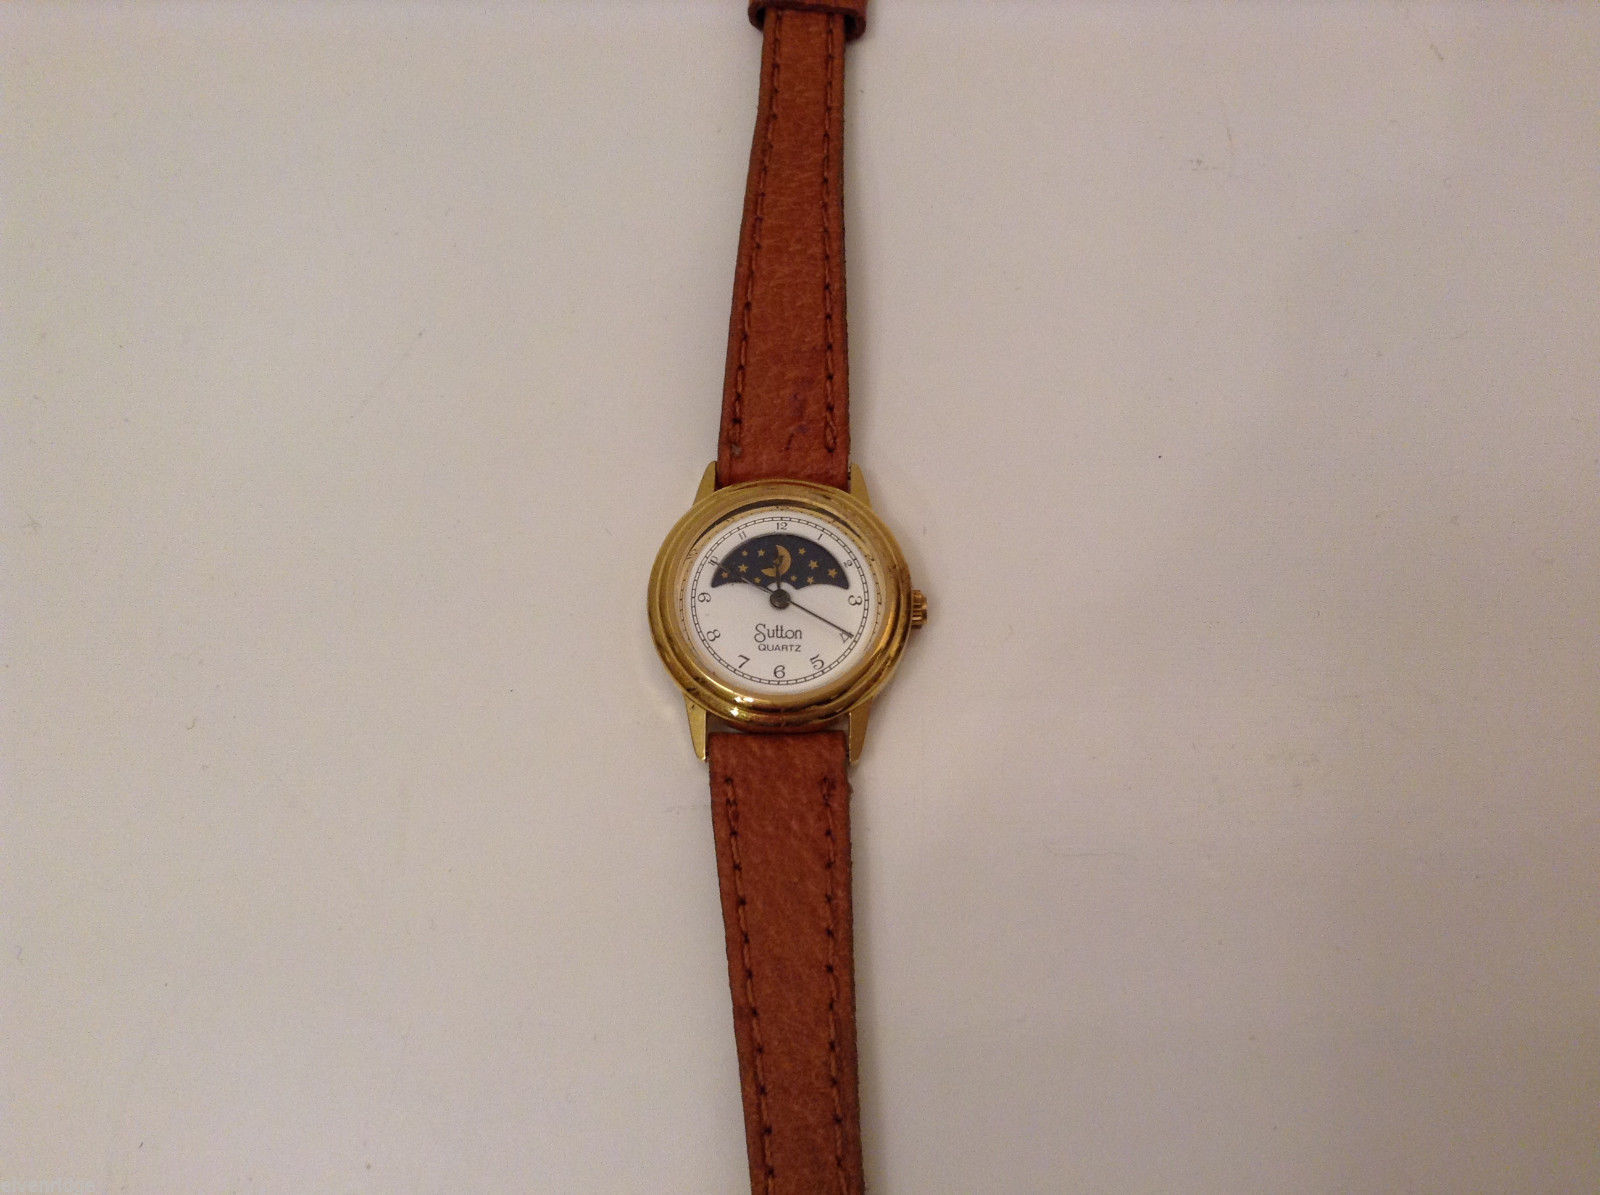 Womens Sutton Quartz Wrist Watch Gold-tone Leather brown band